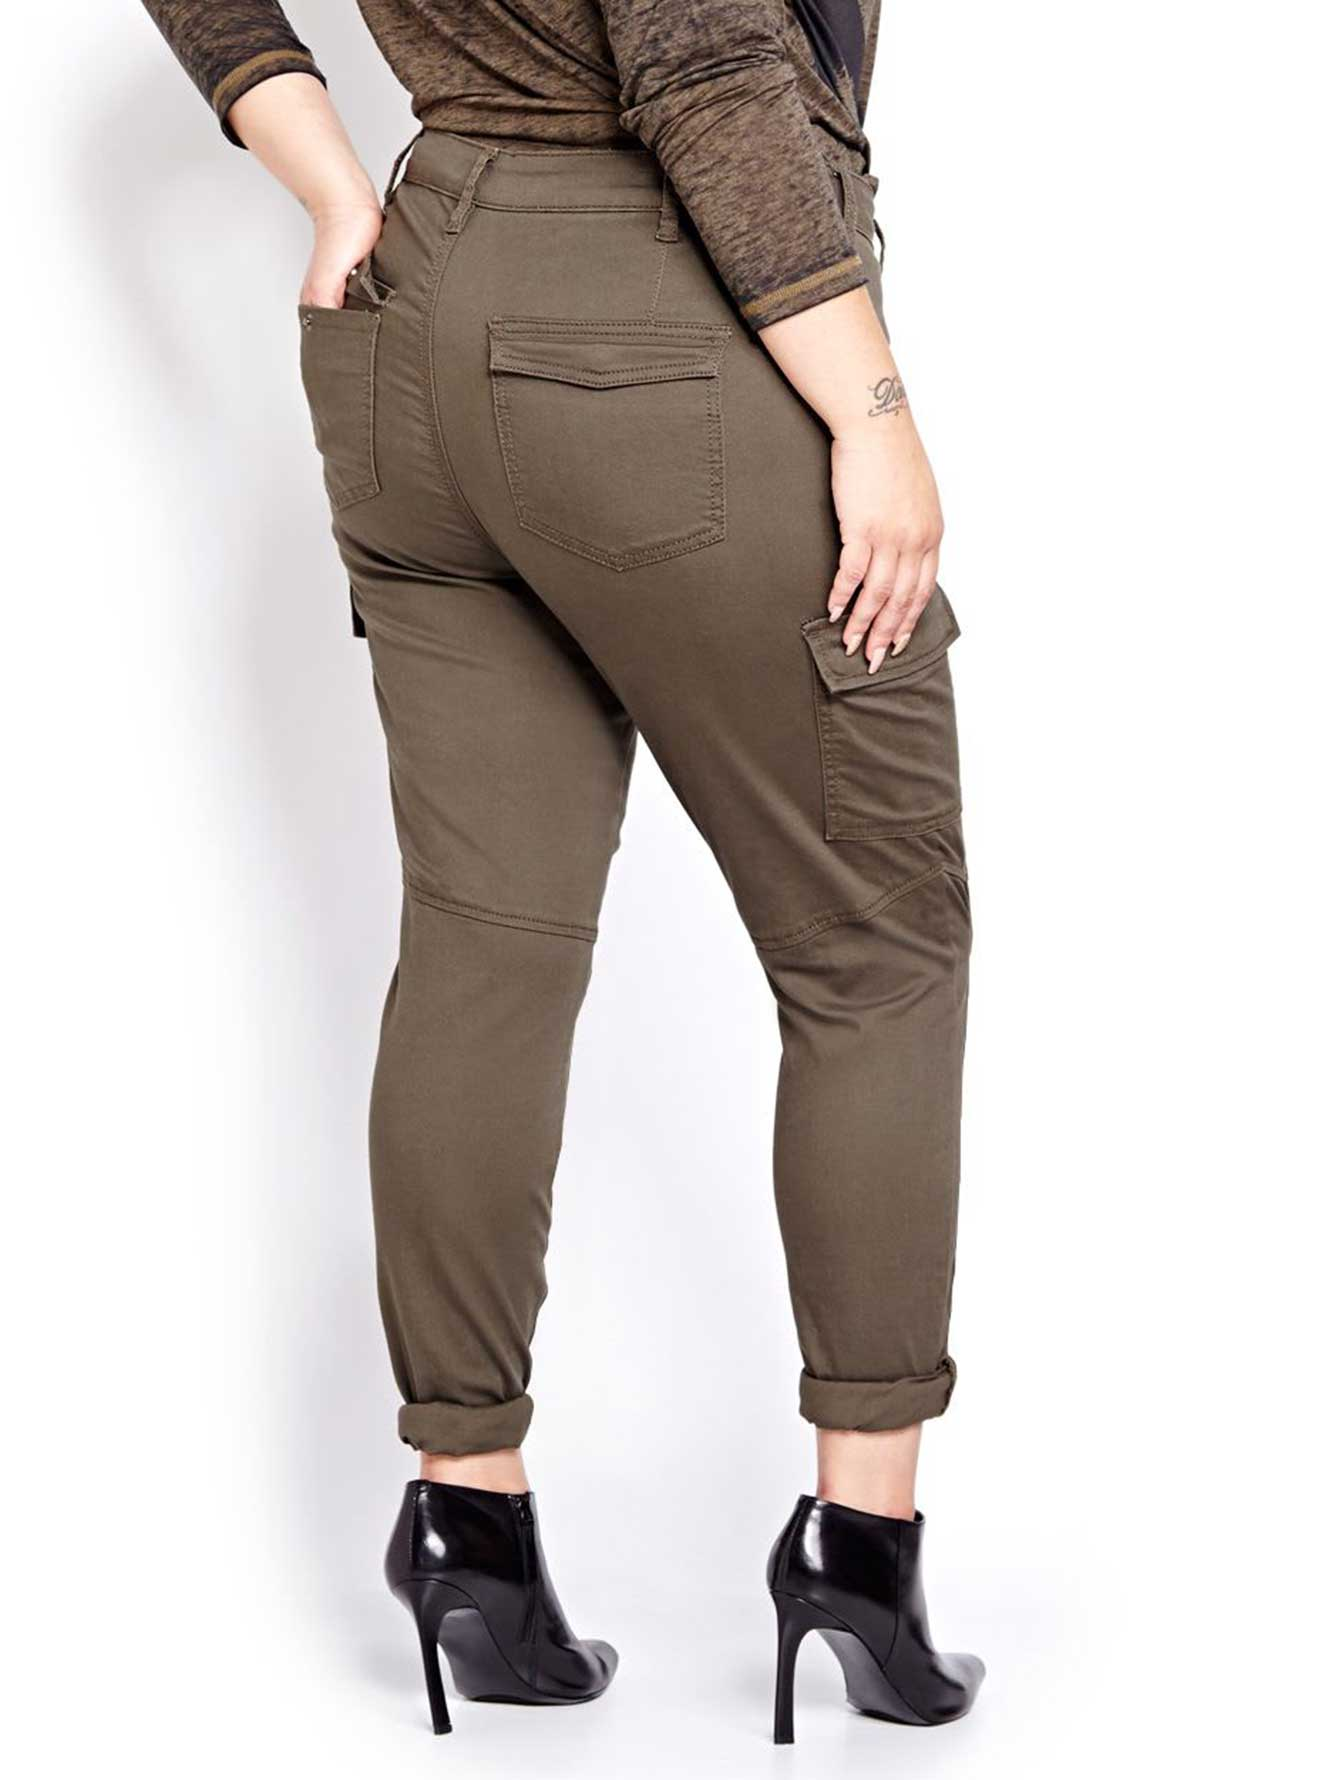 Nadia Aboulhosn Cargo Pant for L&L